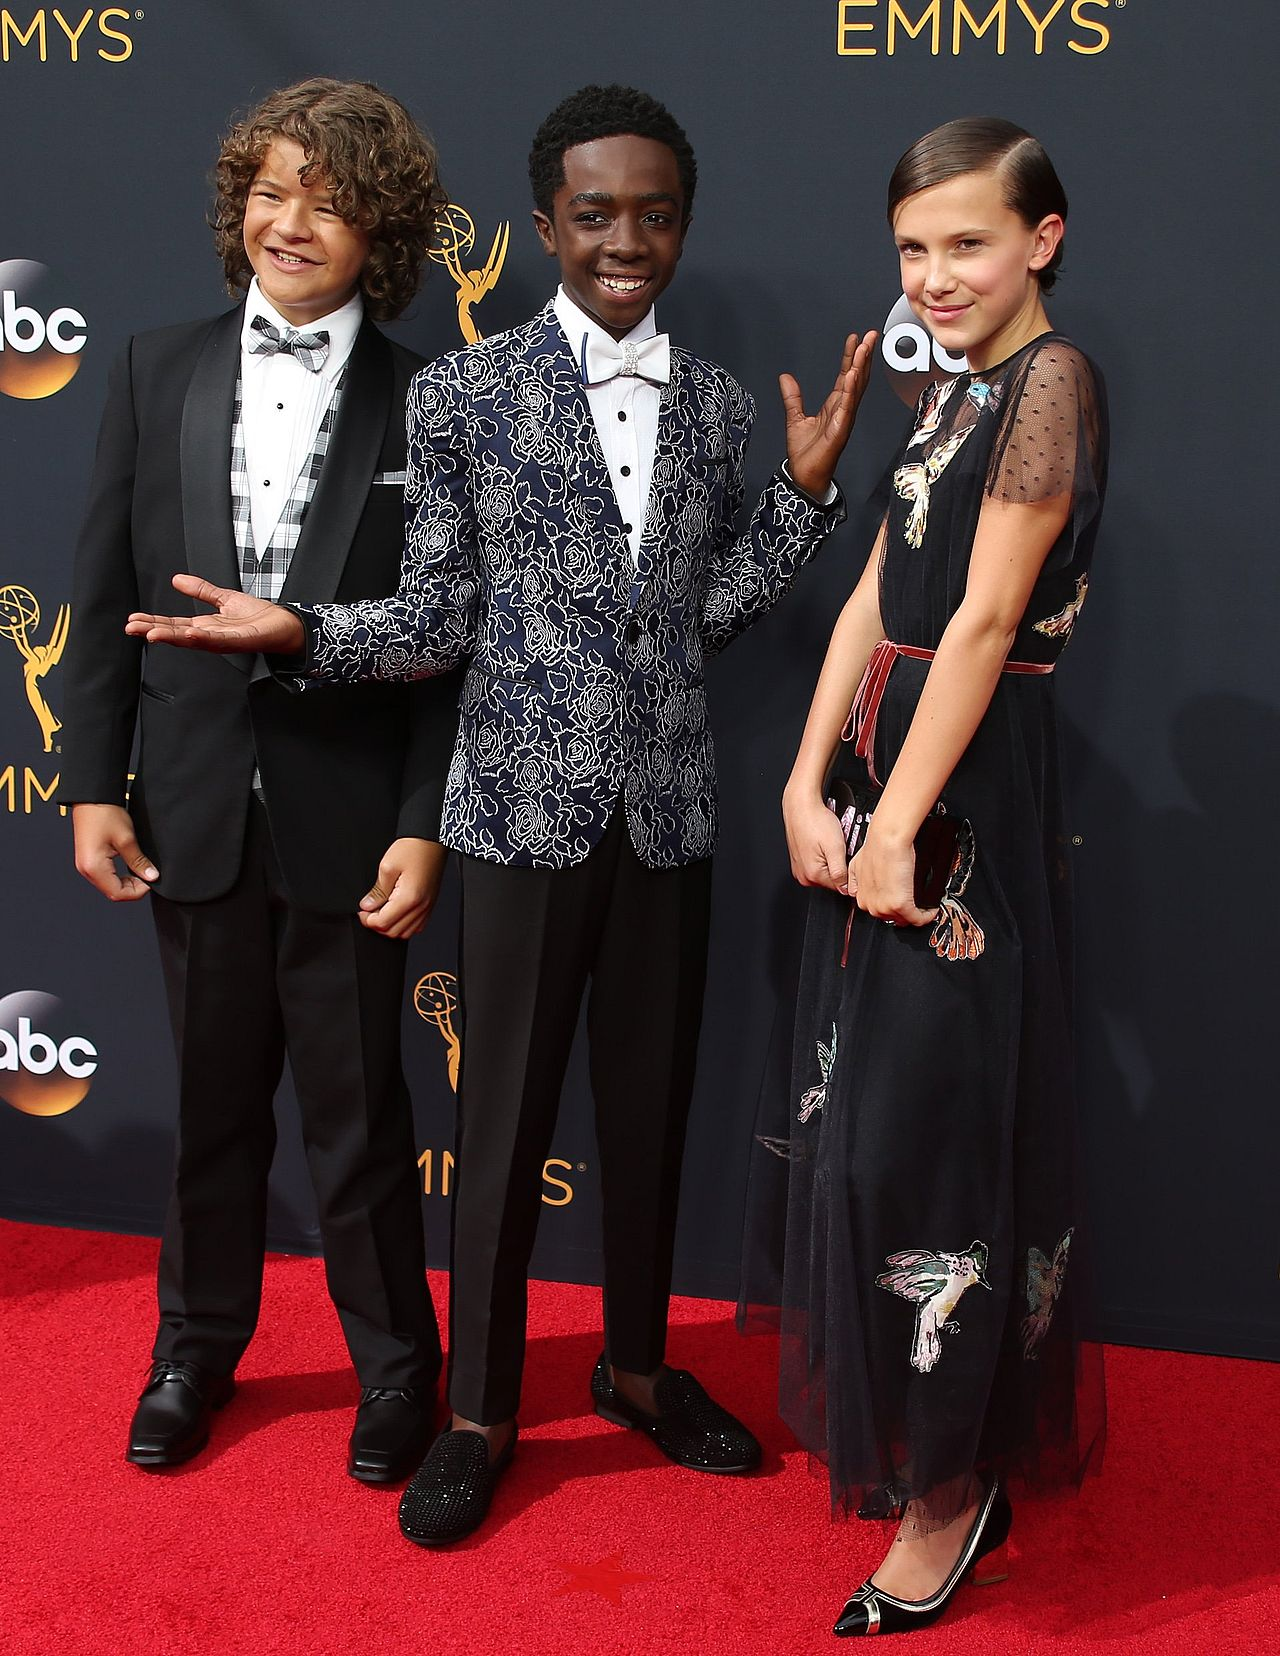 Gaten Matarazzo (L), Caleb McLaughlin i Millie Bobby Brown